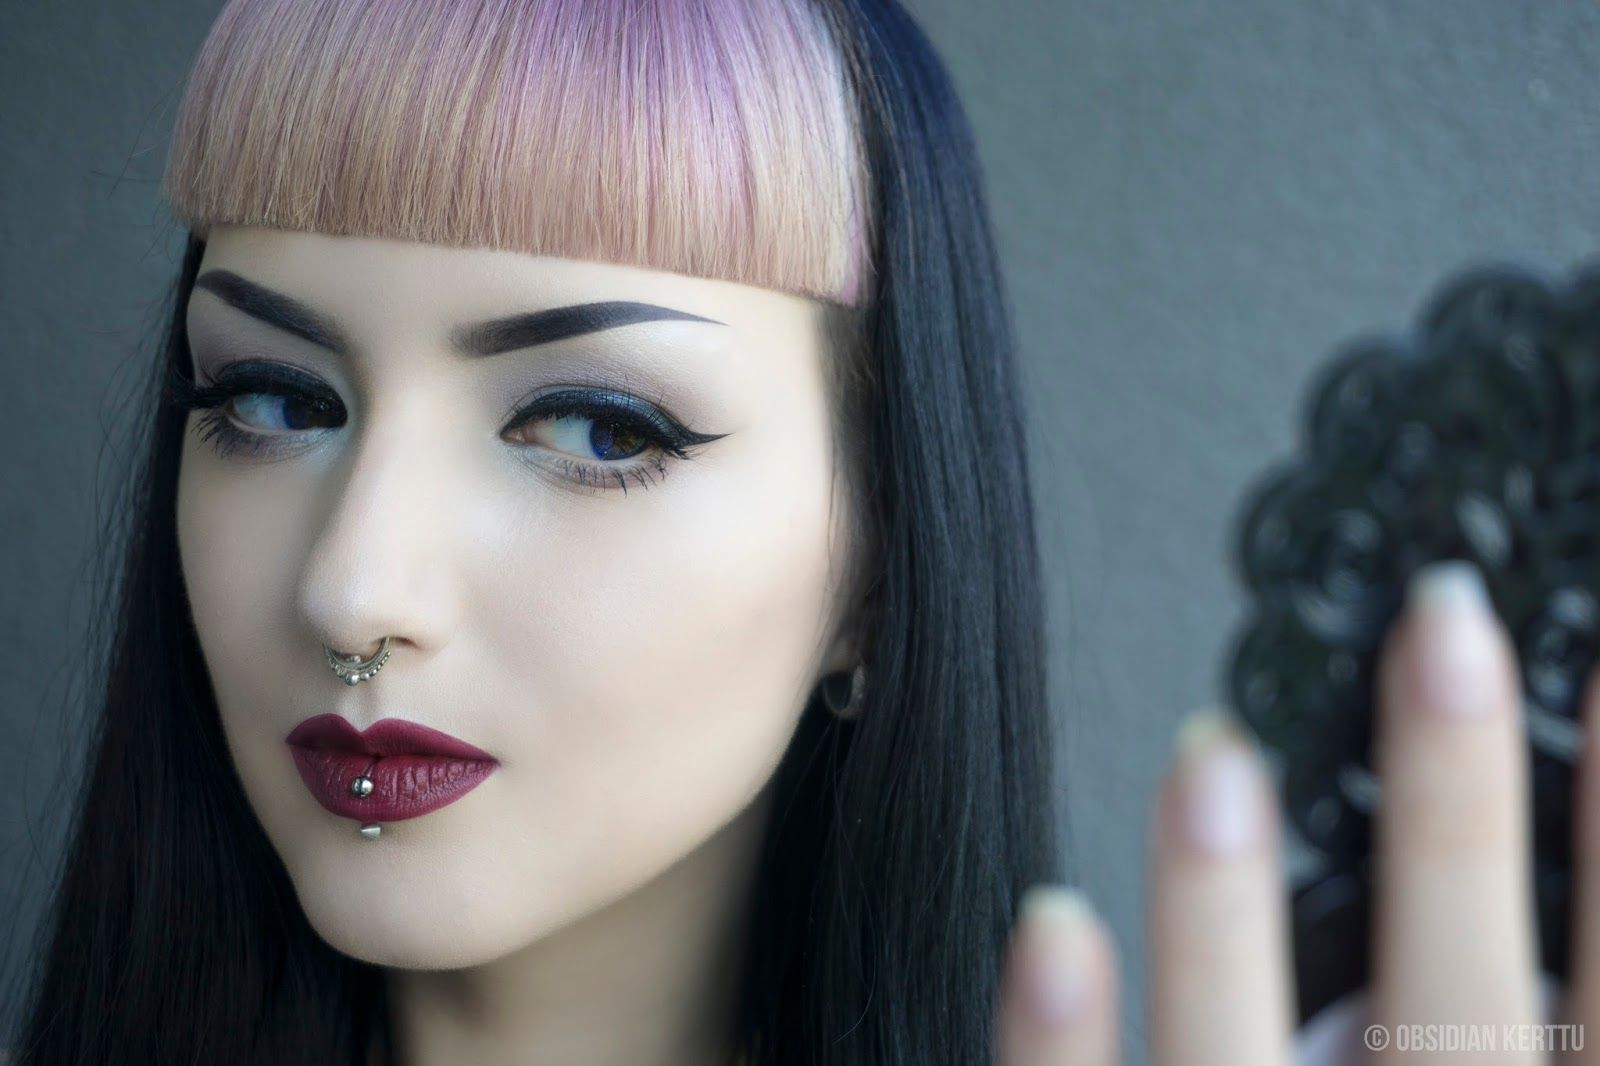 Model obsidian kerttu goth goth girl goth fashion goth makeup